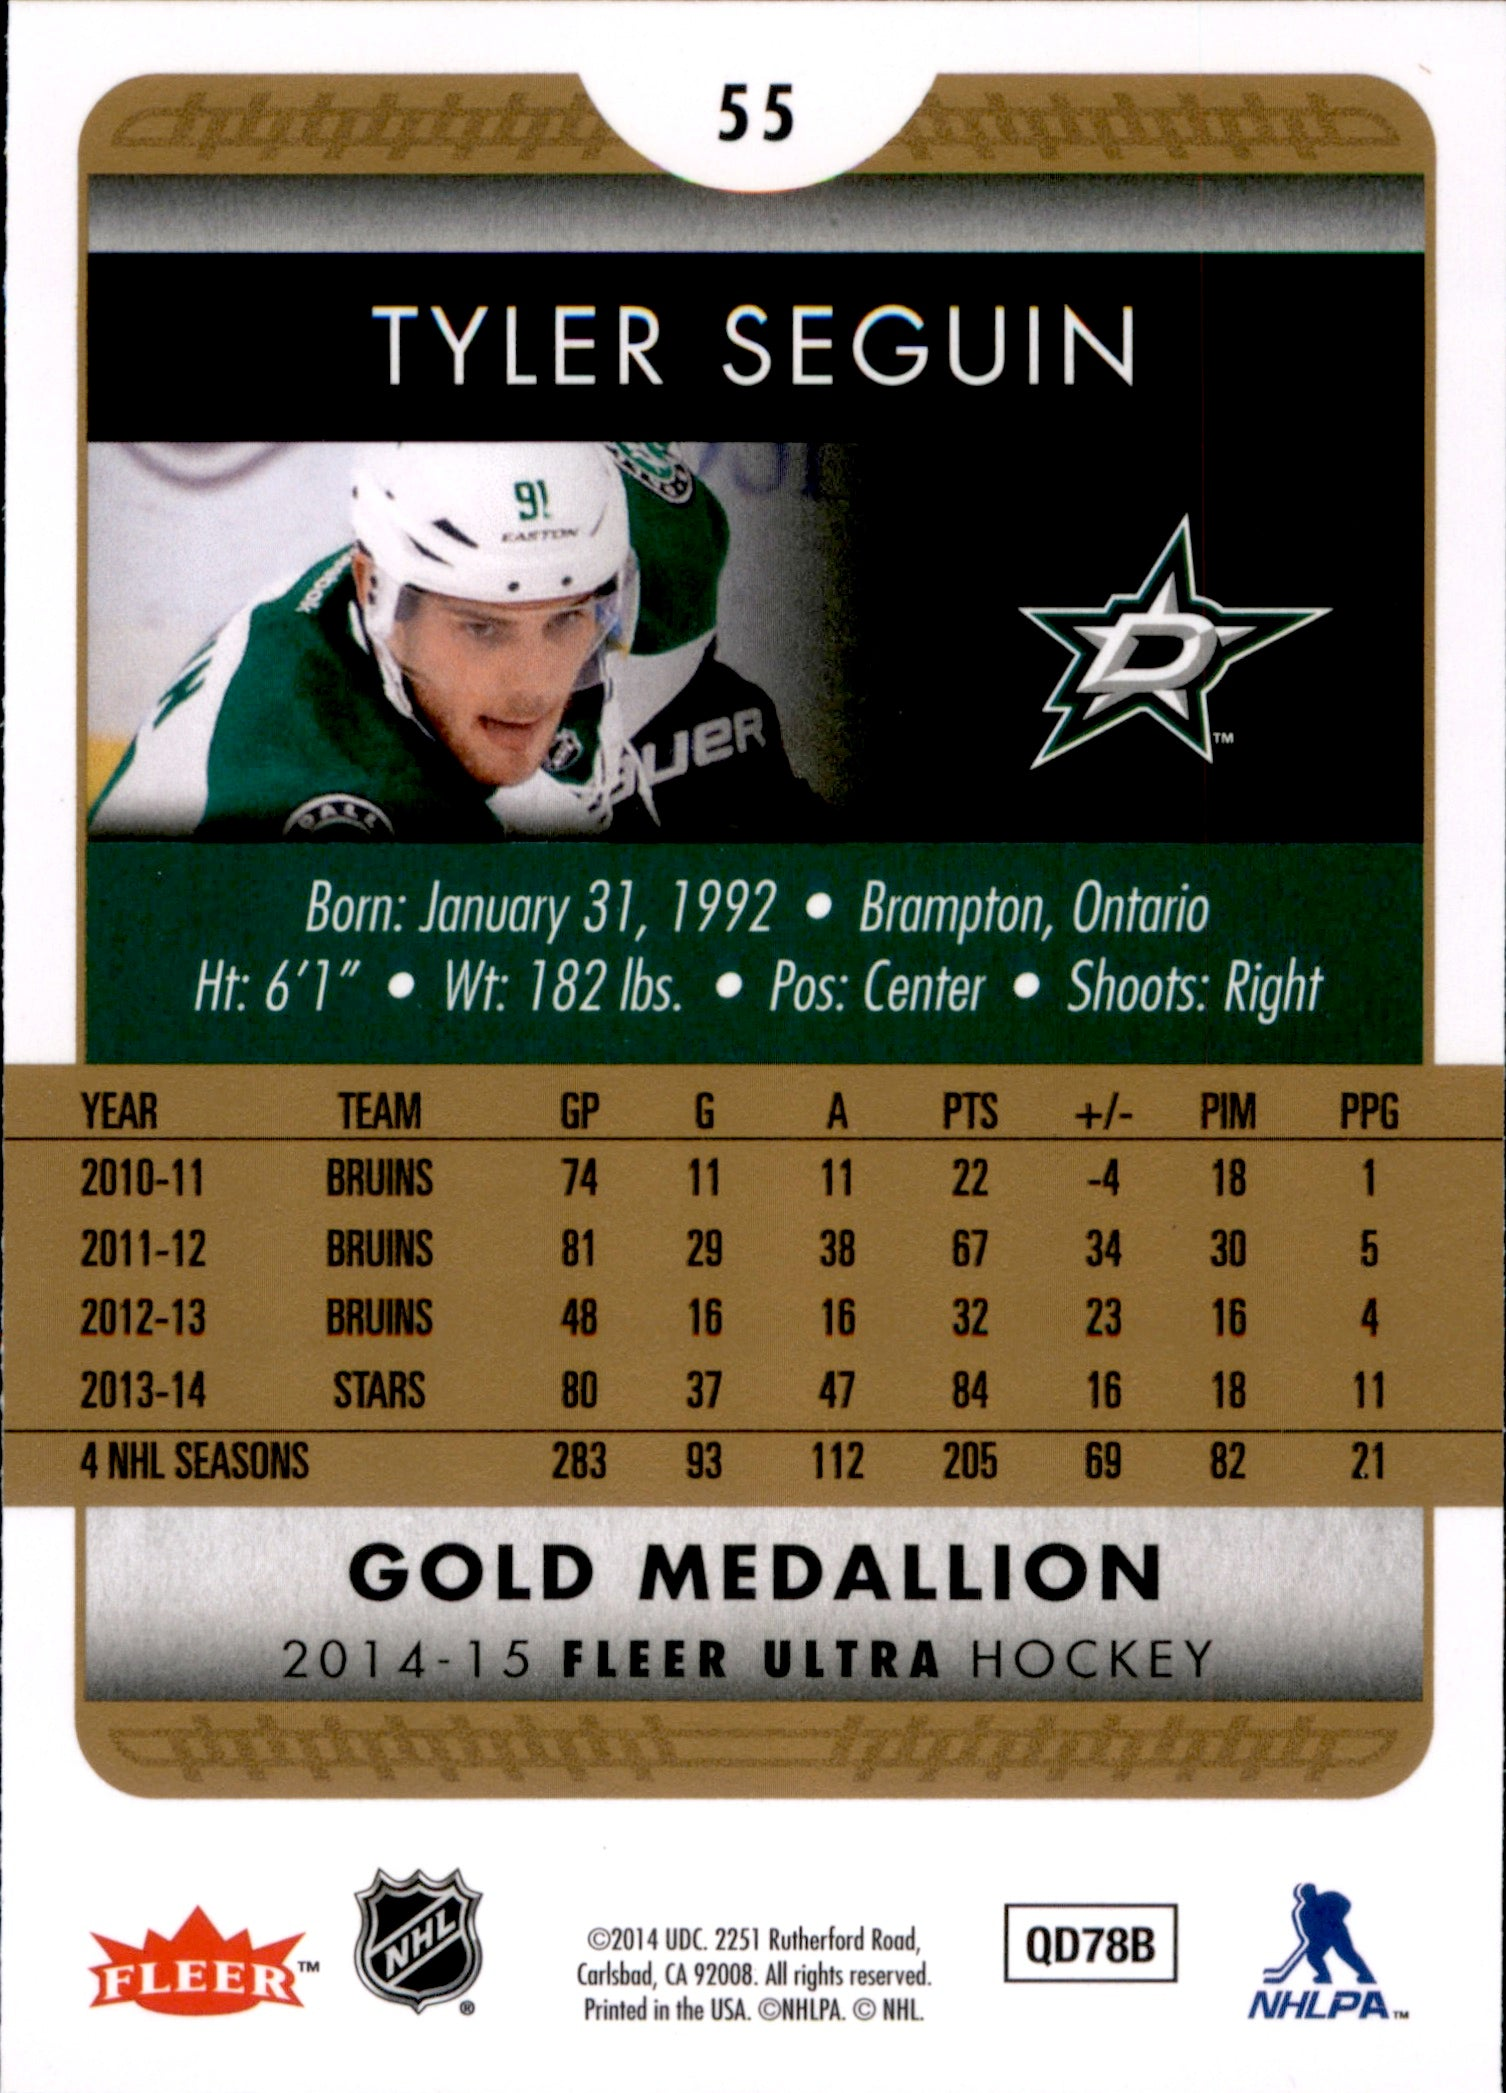 2014-15 Fleer Ultra Gold Medallion #055 Tyler Seguin | Eastridge Sports Cards